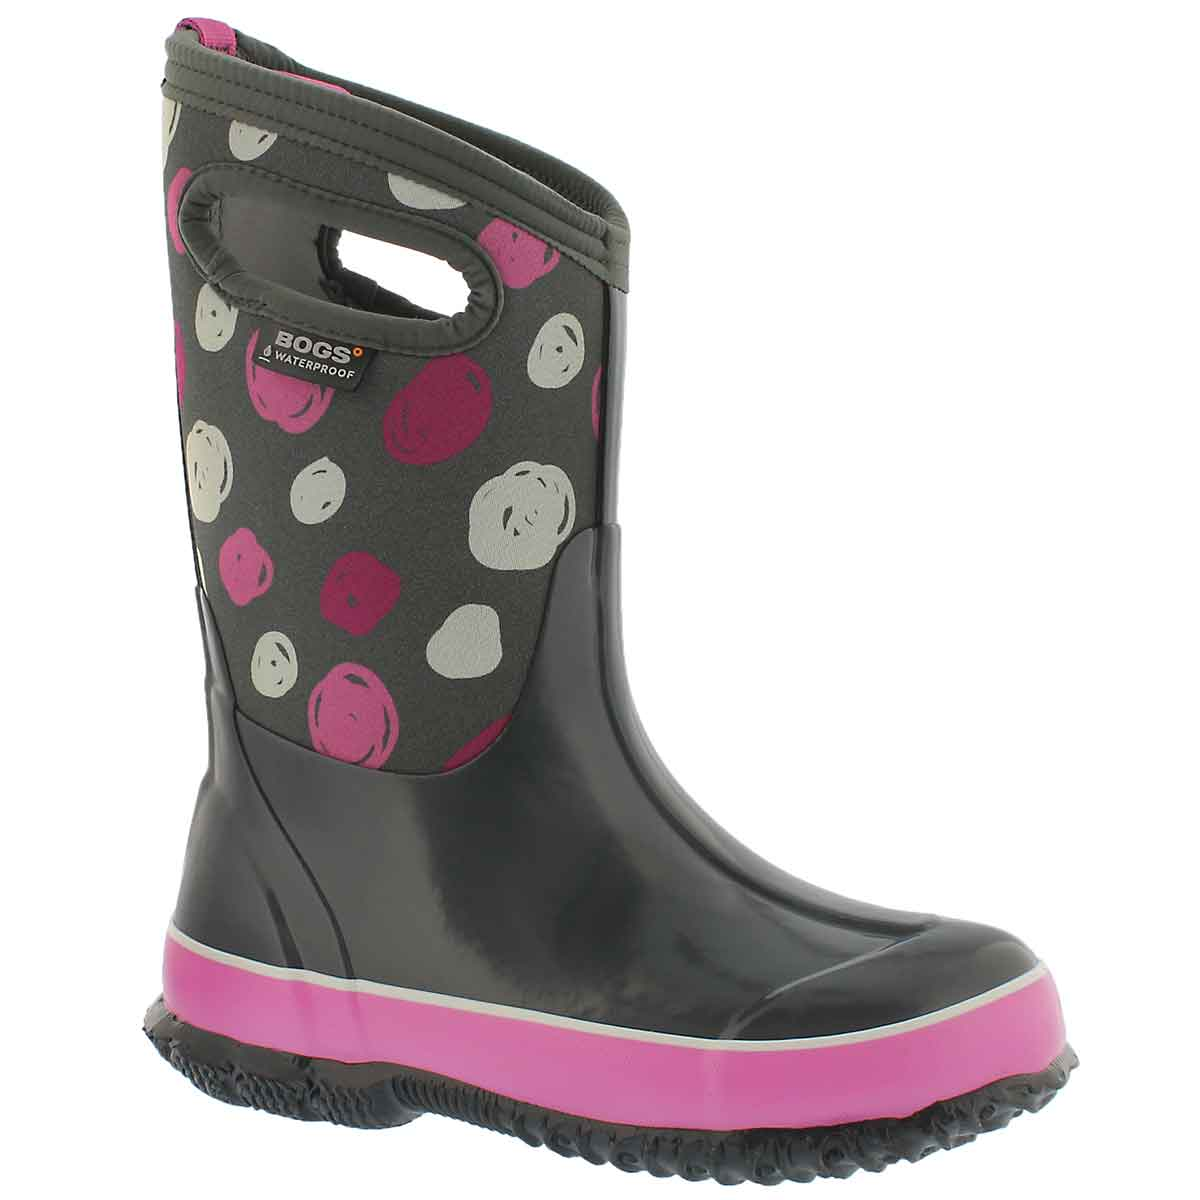 Girls' CLASSIC SKETCHED DOTS grey waterproof boots